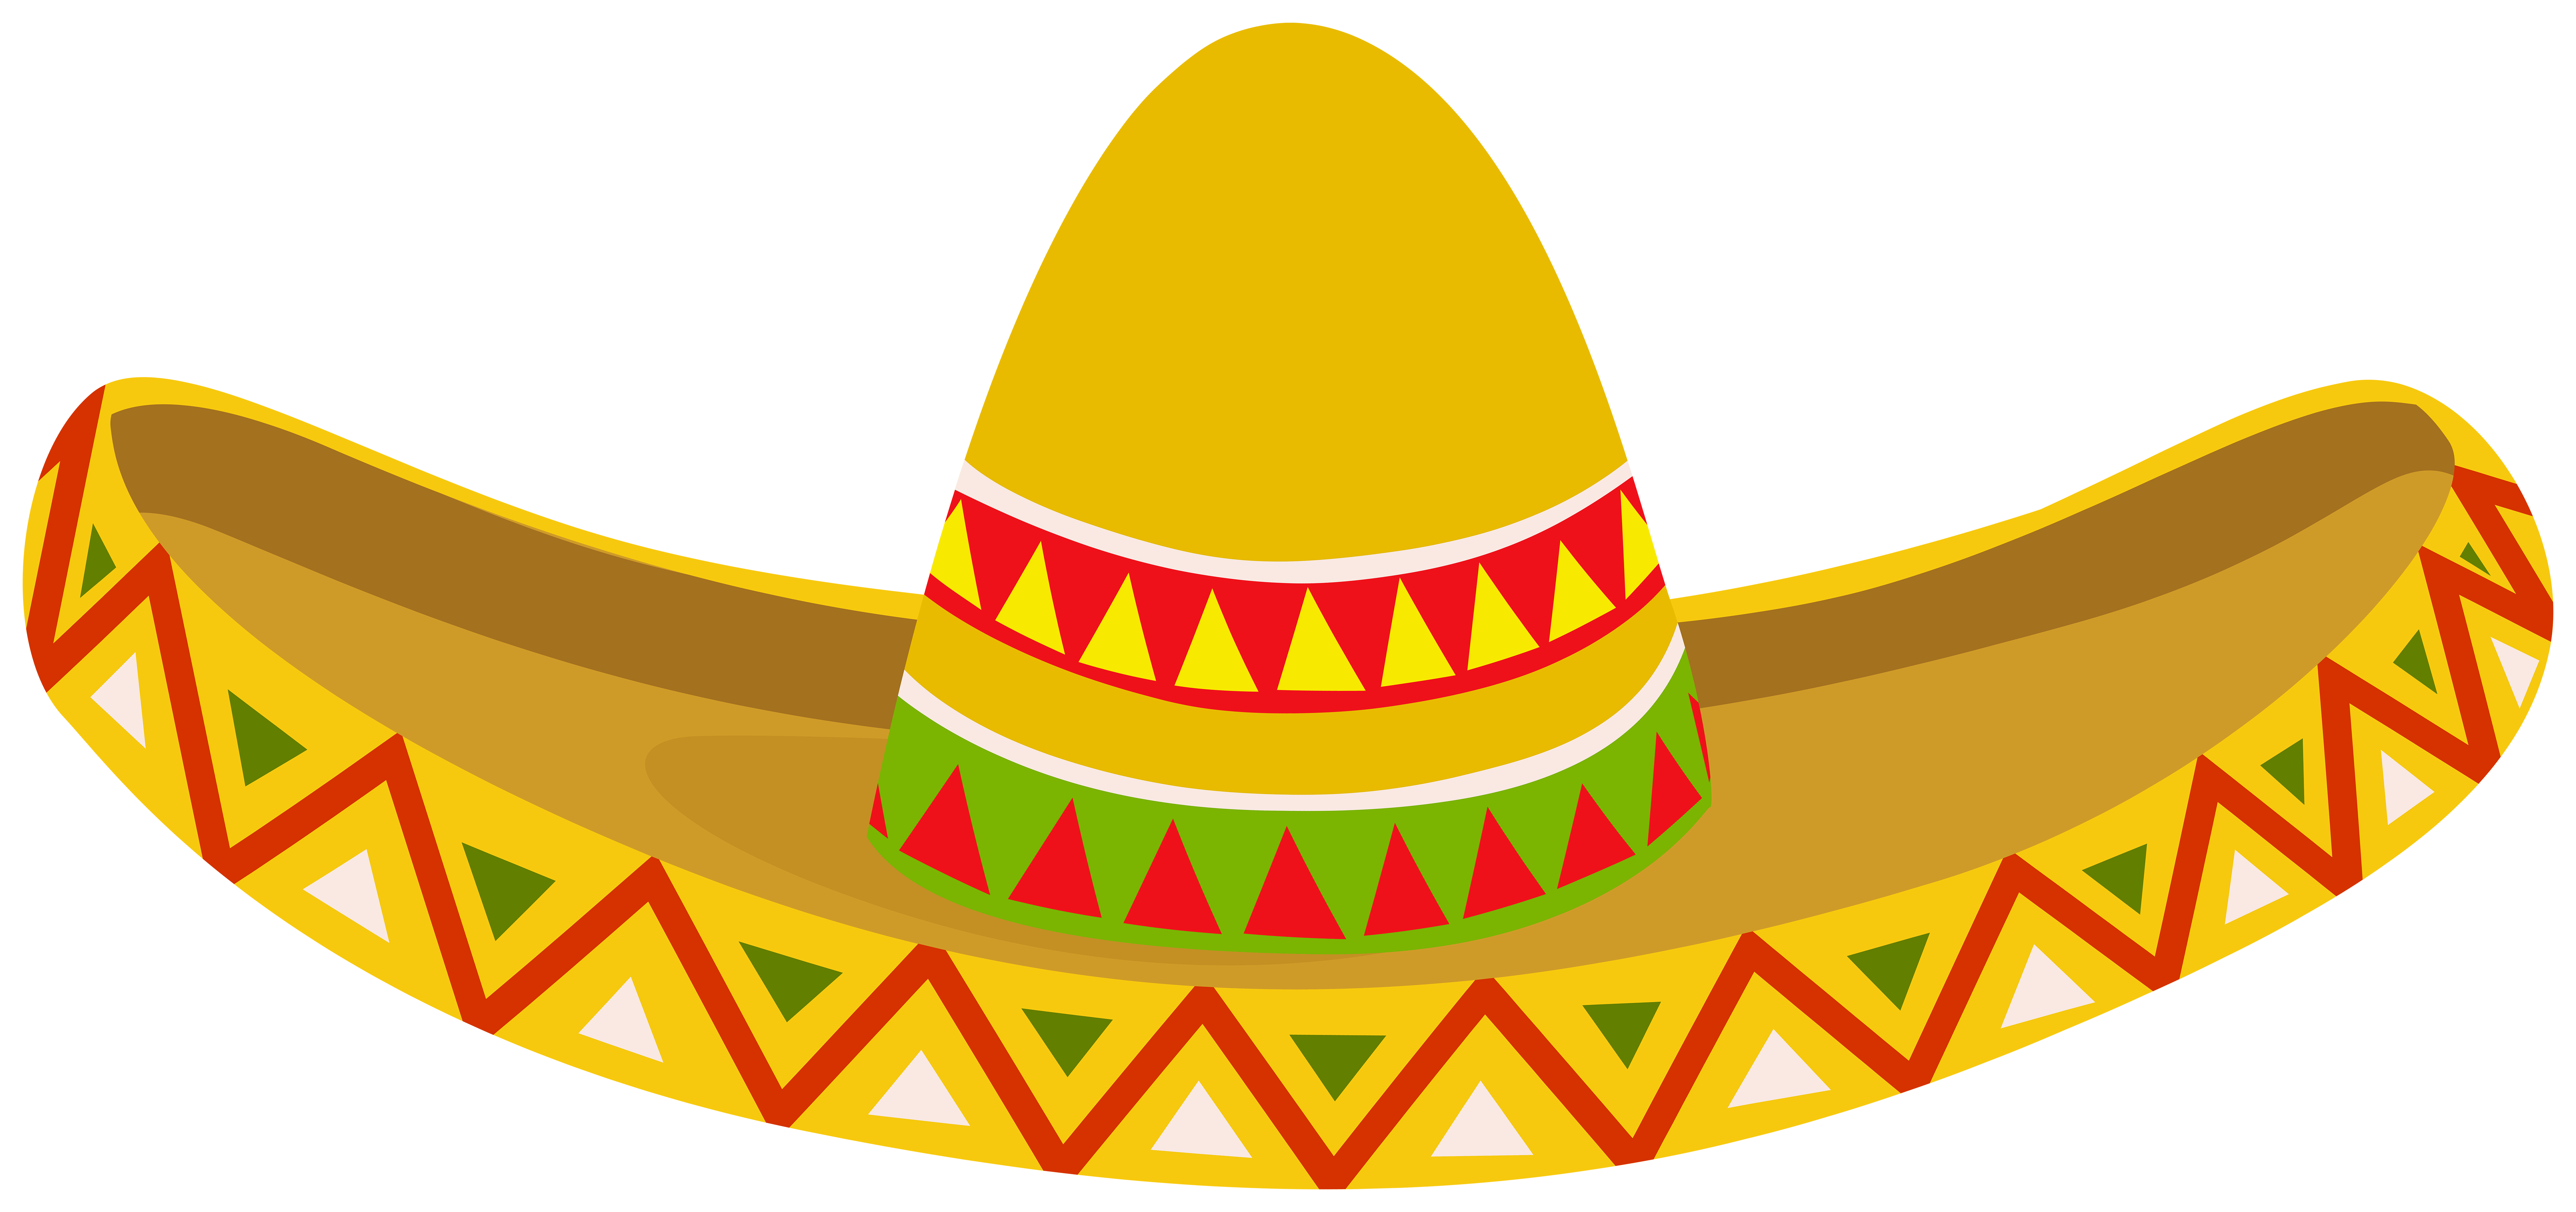 Mexican Sombrero Png Clipart Gallery Yopriceville High Quality Images And Transparent Png Free Clipart Sombrero Clip Art Free Clip Art